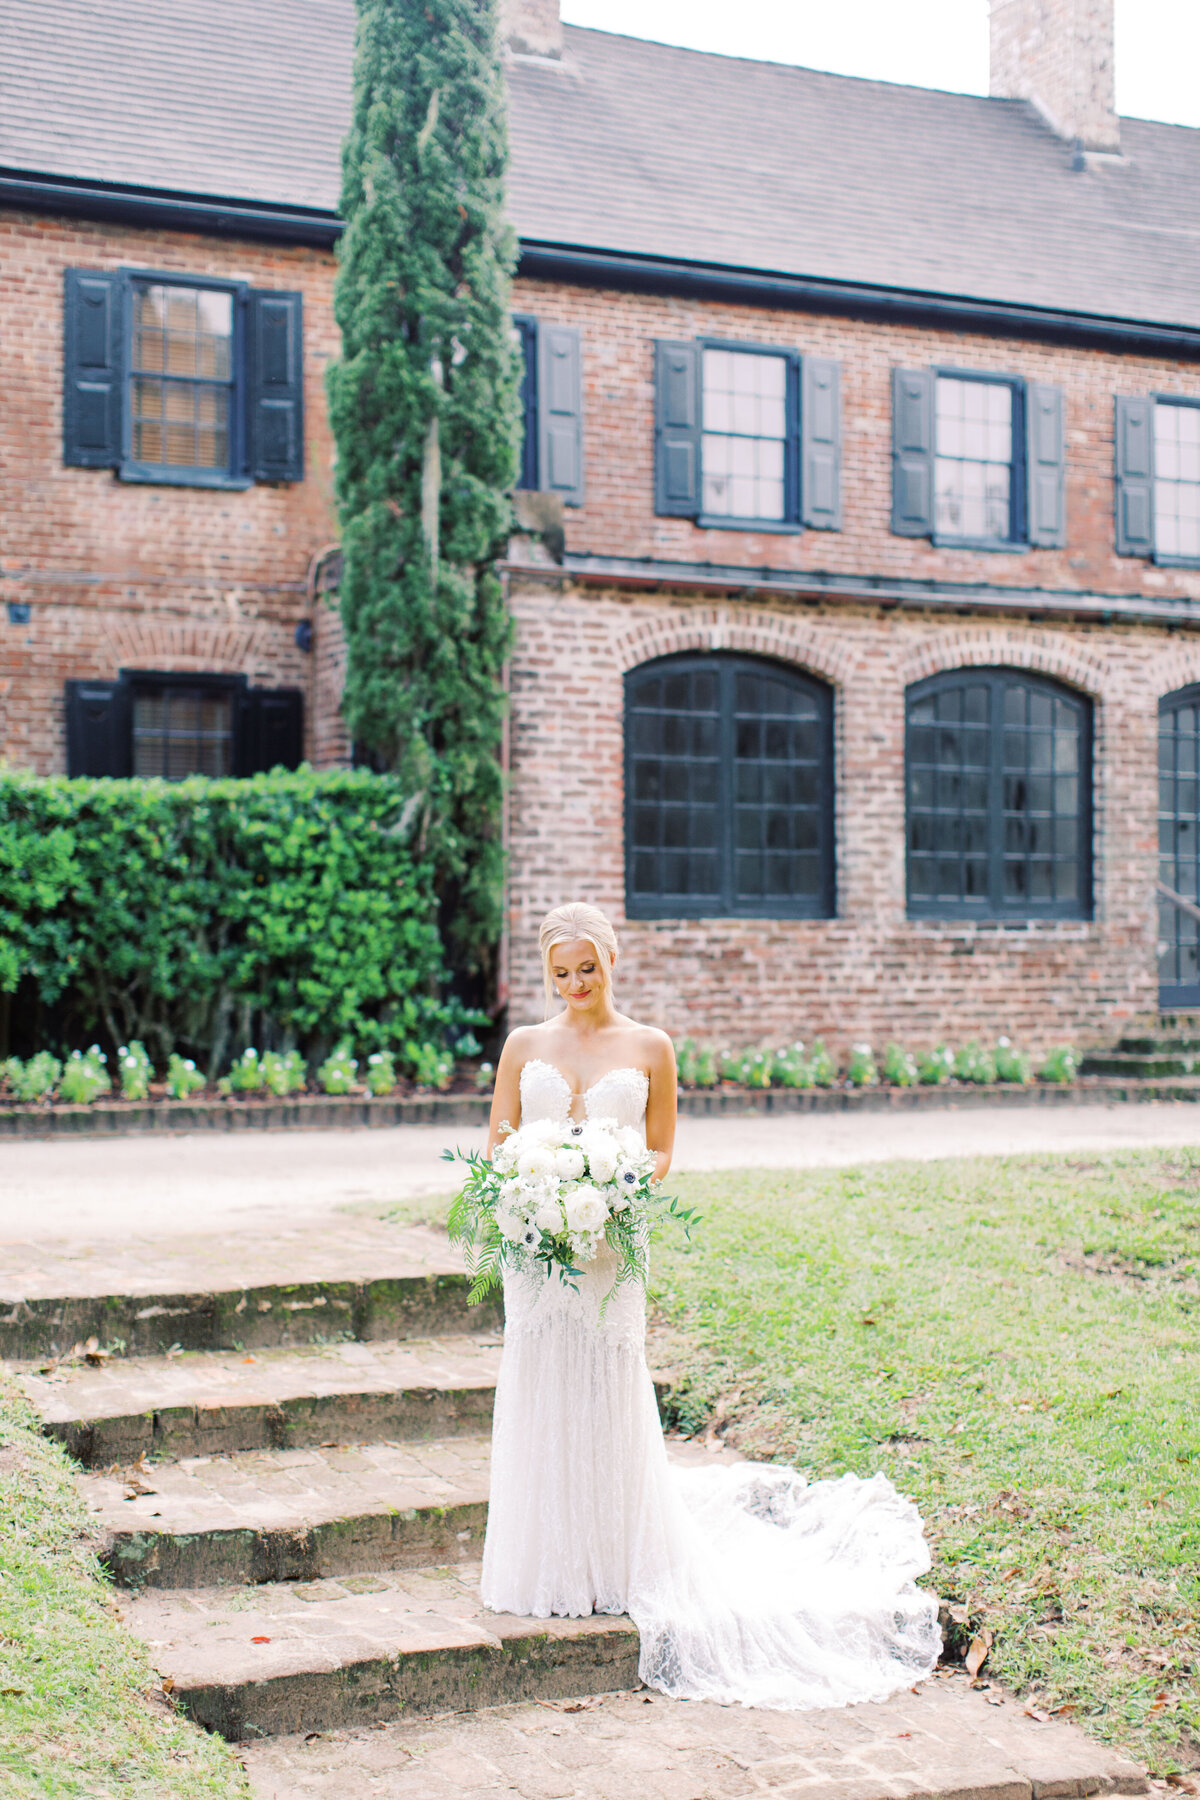 Melton_Wedding__Middleton_Place_Plantation_Charleston_South_Carolina_Jacksonville_Florida_Devon_Donnahoo_Photography__0316